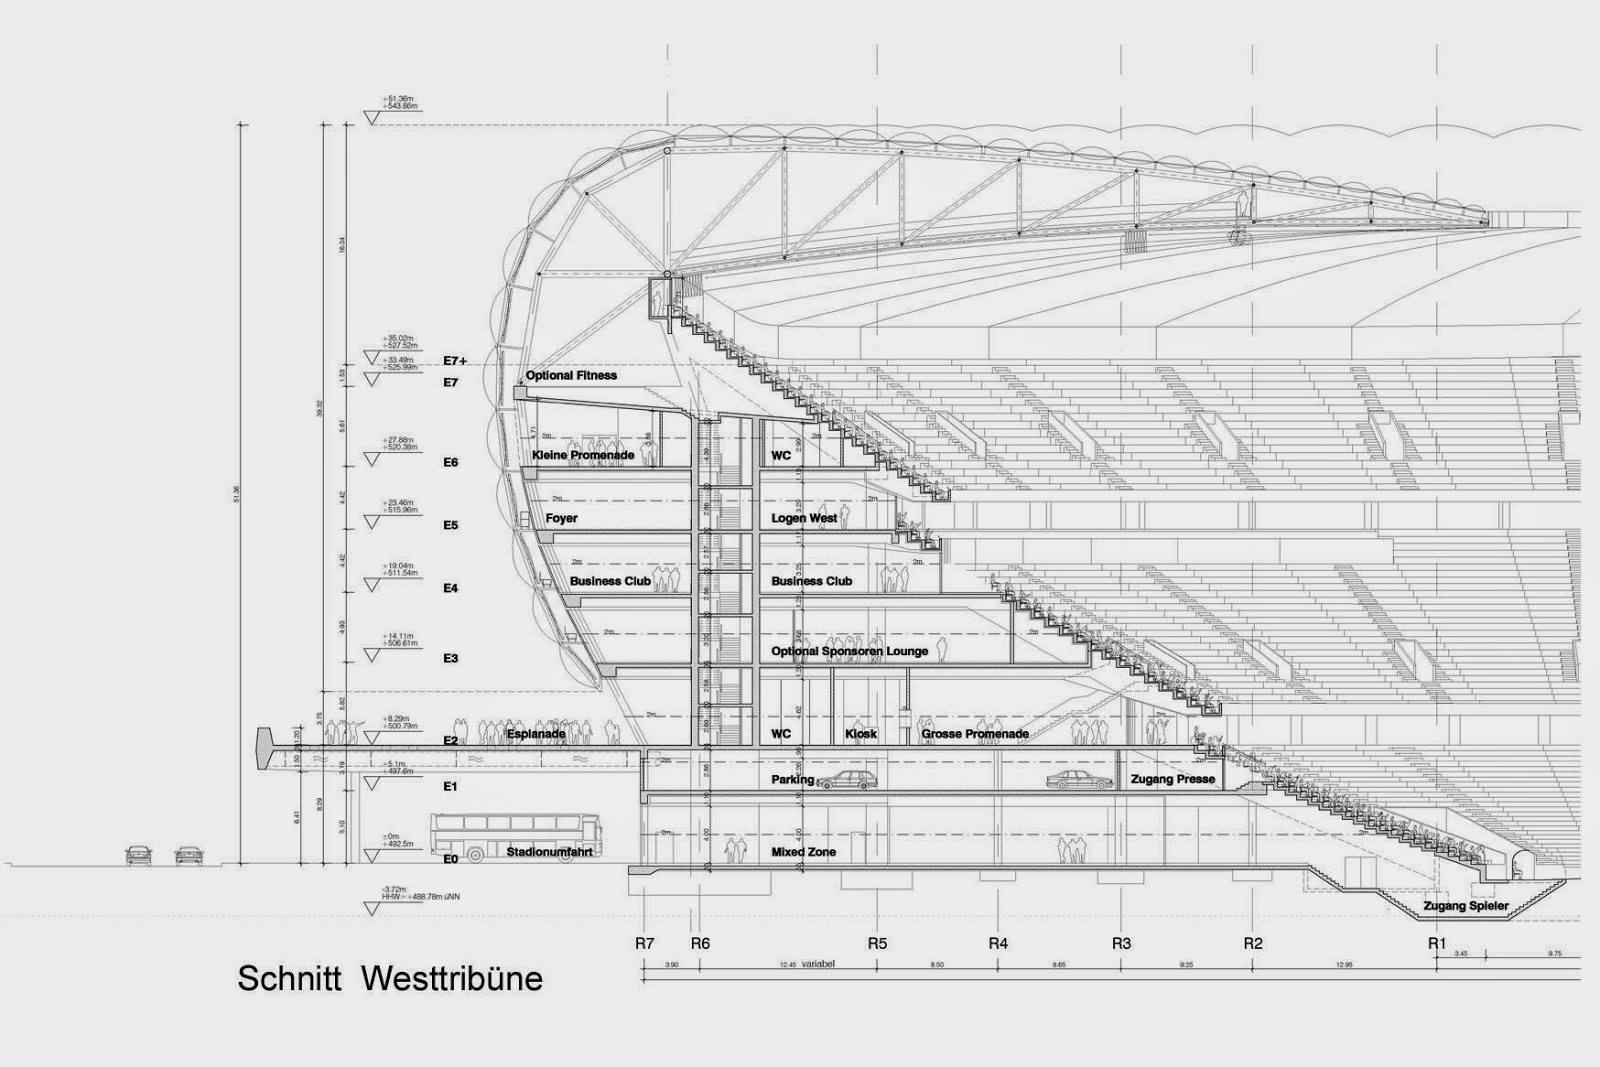 Allianz arena architectural drawings plans designs for Architecture plan drawing